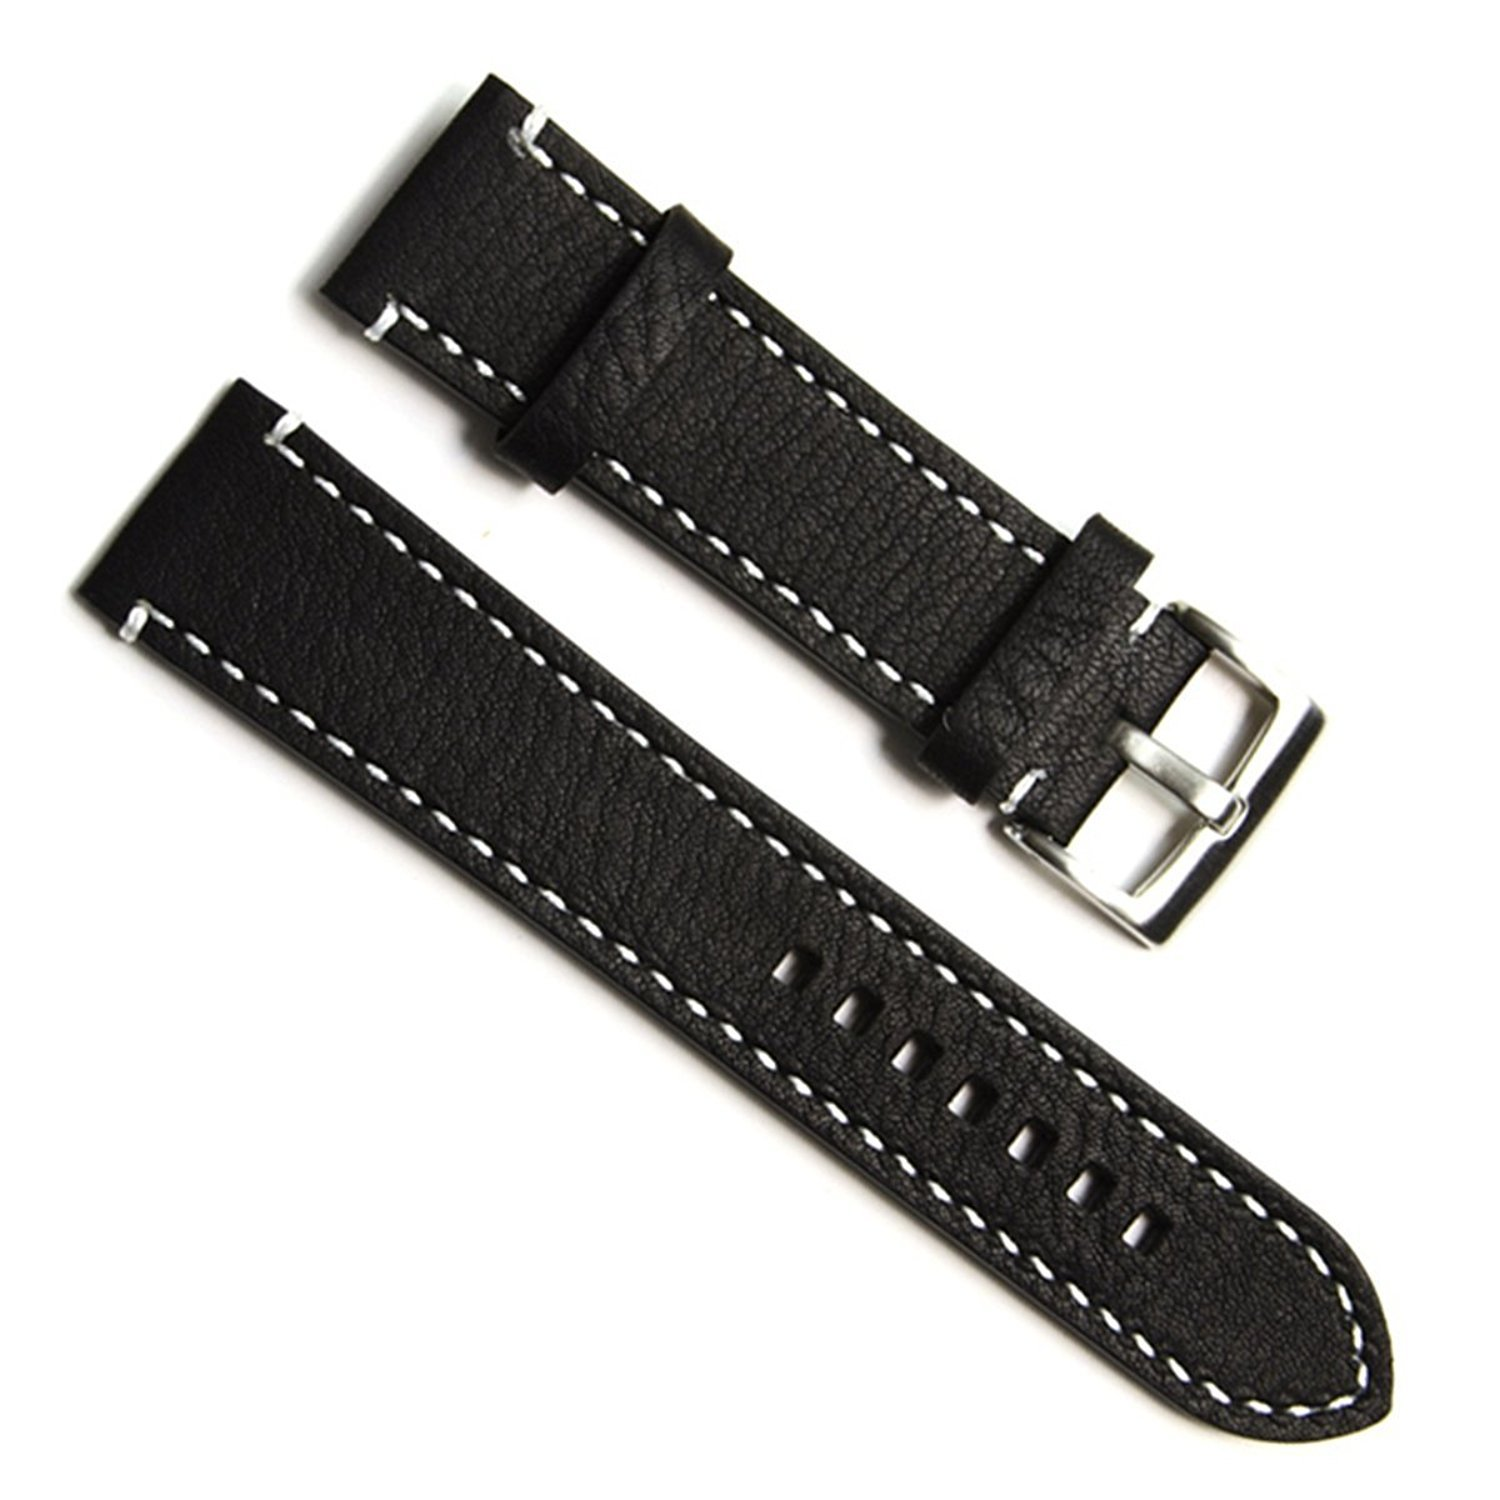 Amazon Handmade Vintage Replacement Leather Watch Strap Watch